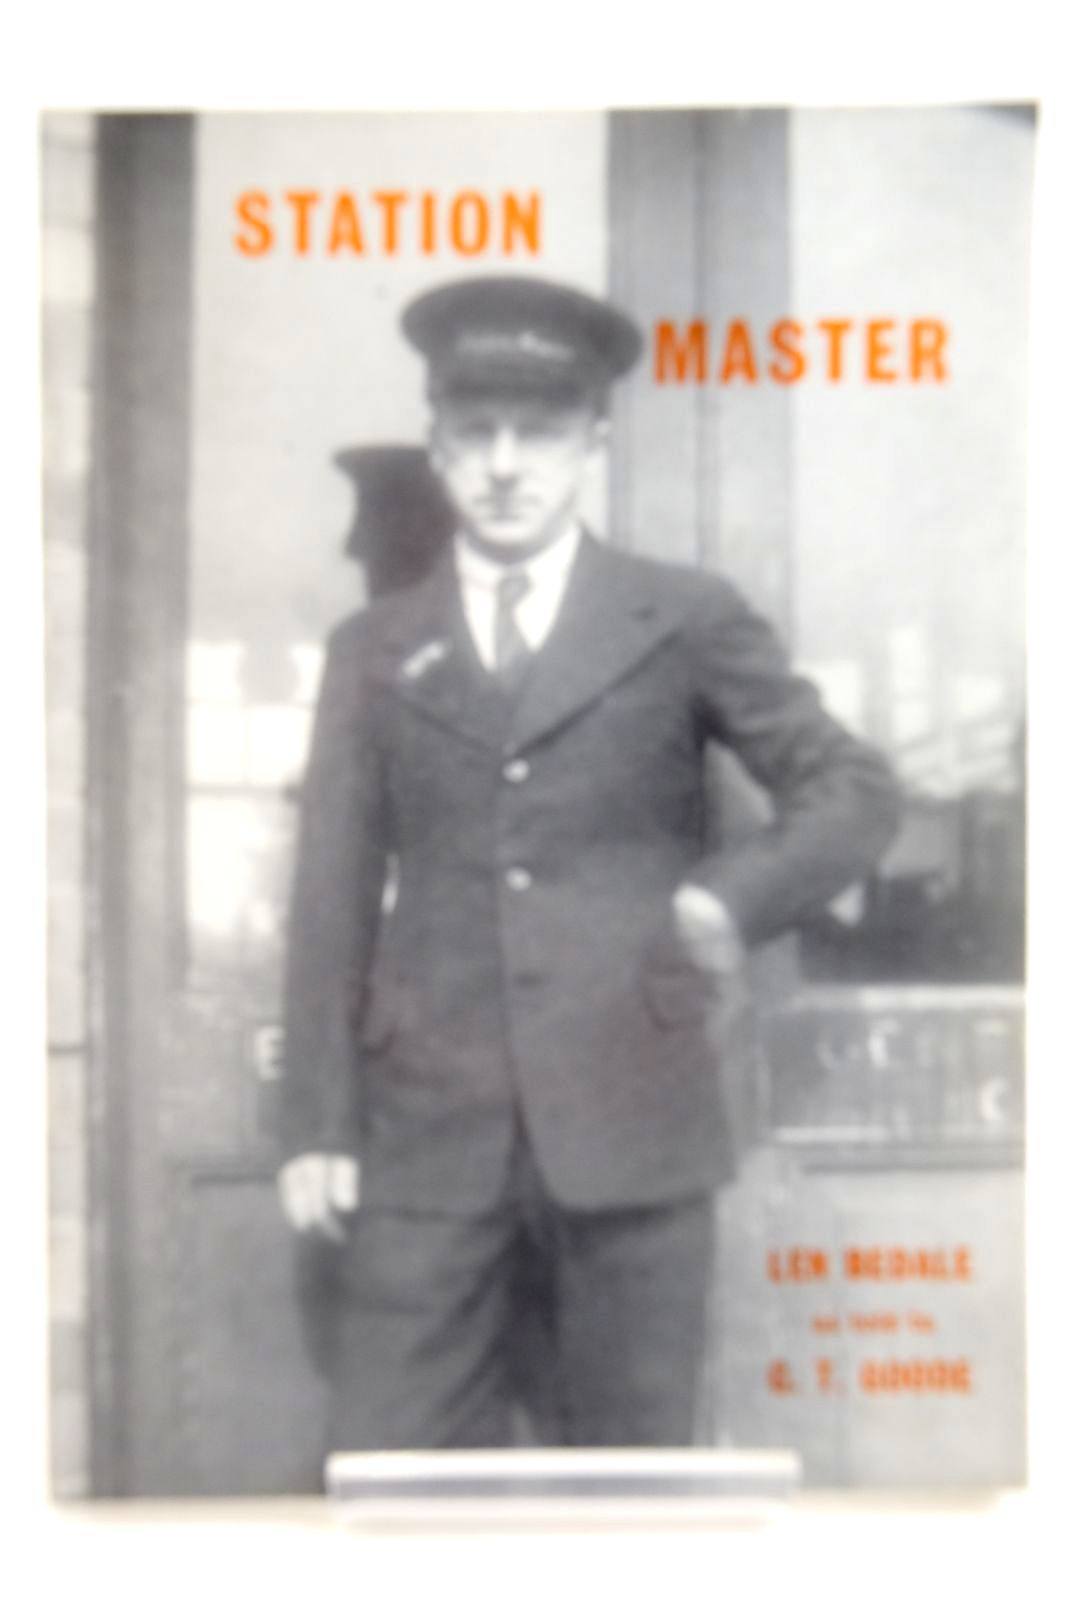 Photo of STATION MASTER MY LIFETIME'S RAILWAY SERVICE IN YORKSHIRE written by Bedale, Len Goode, C.T. published by Turntable Publications (STOCK CODE: 2133726)  for sale by Stella & Rose's Books